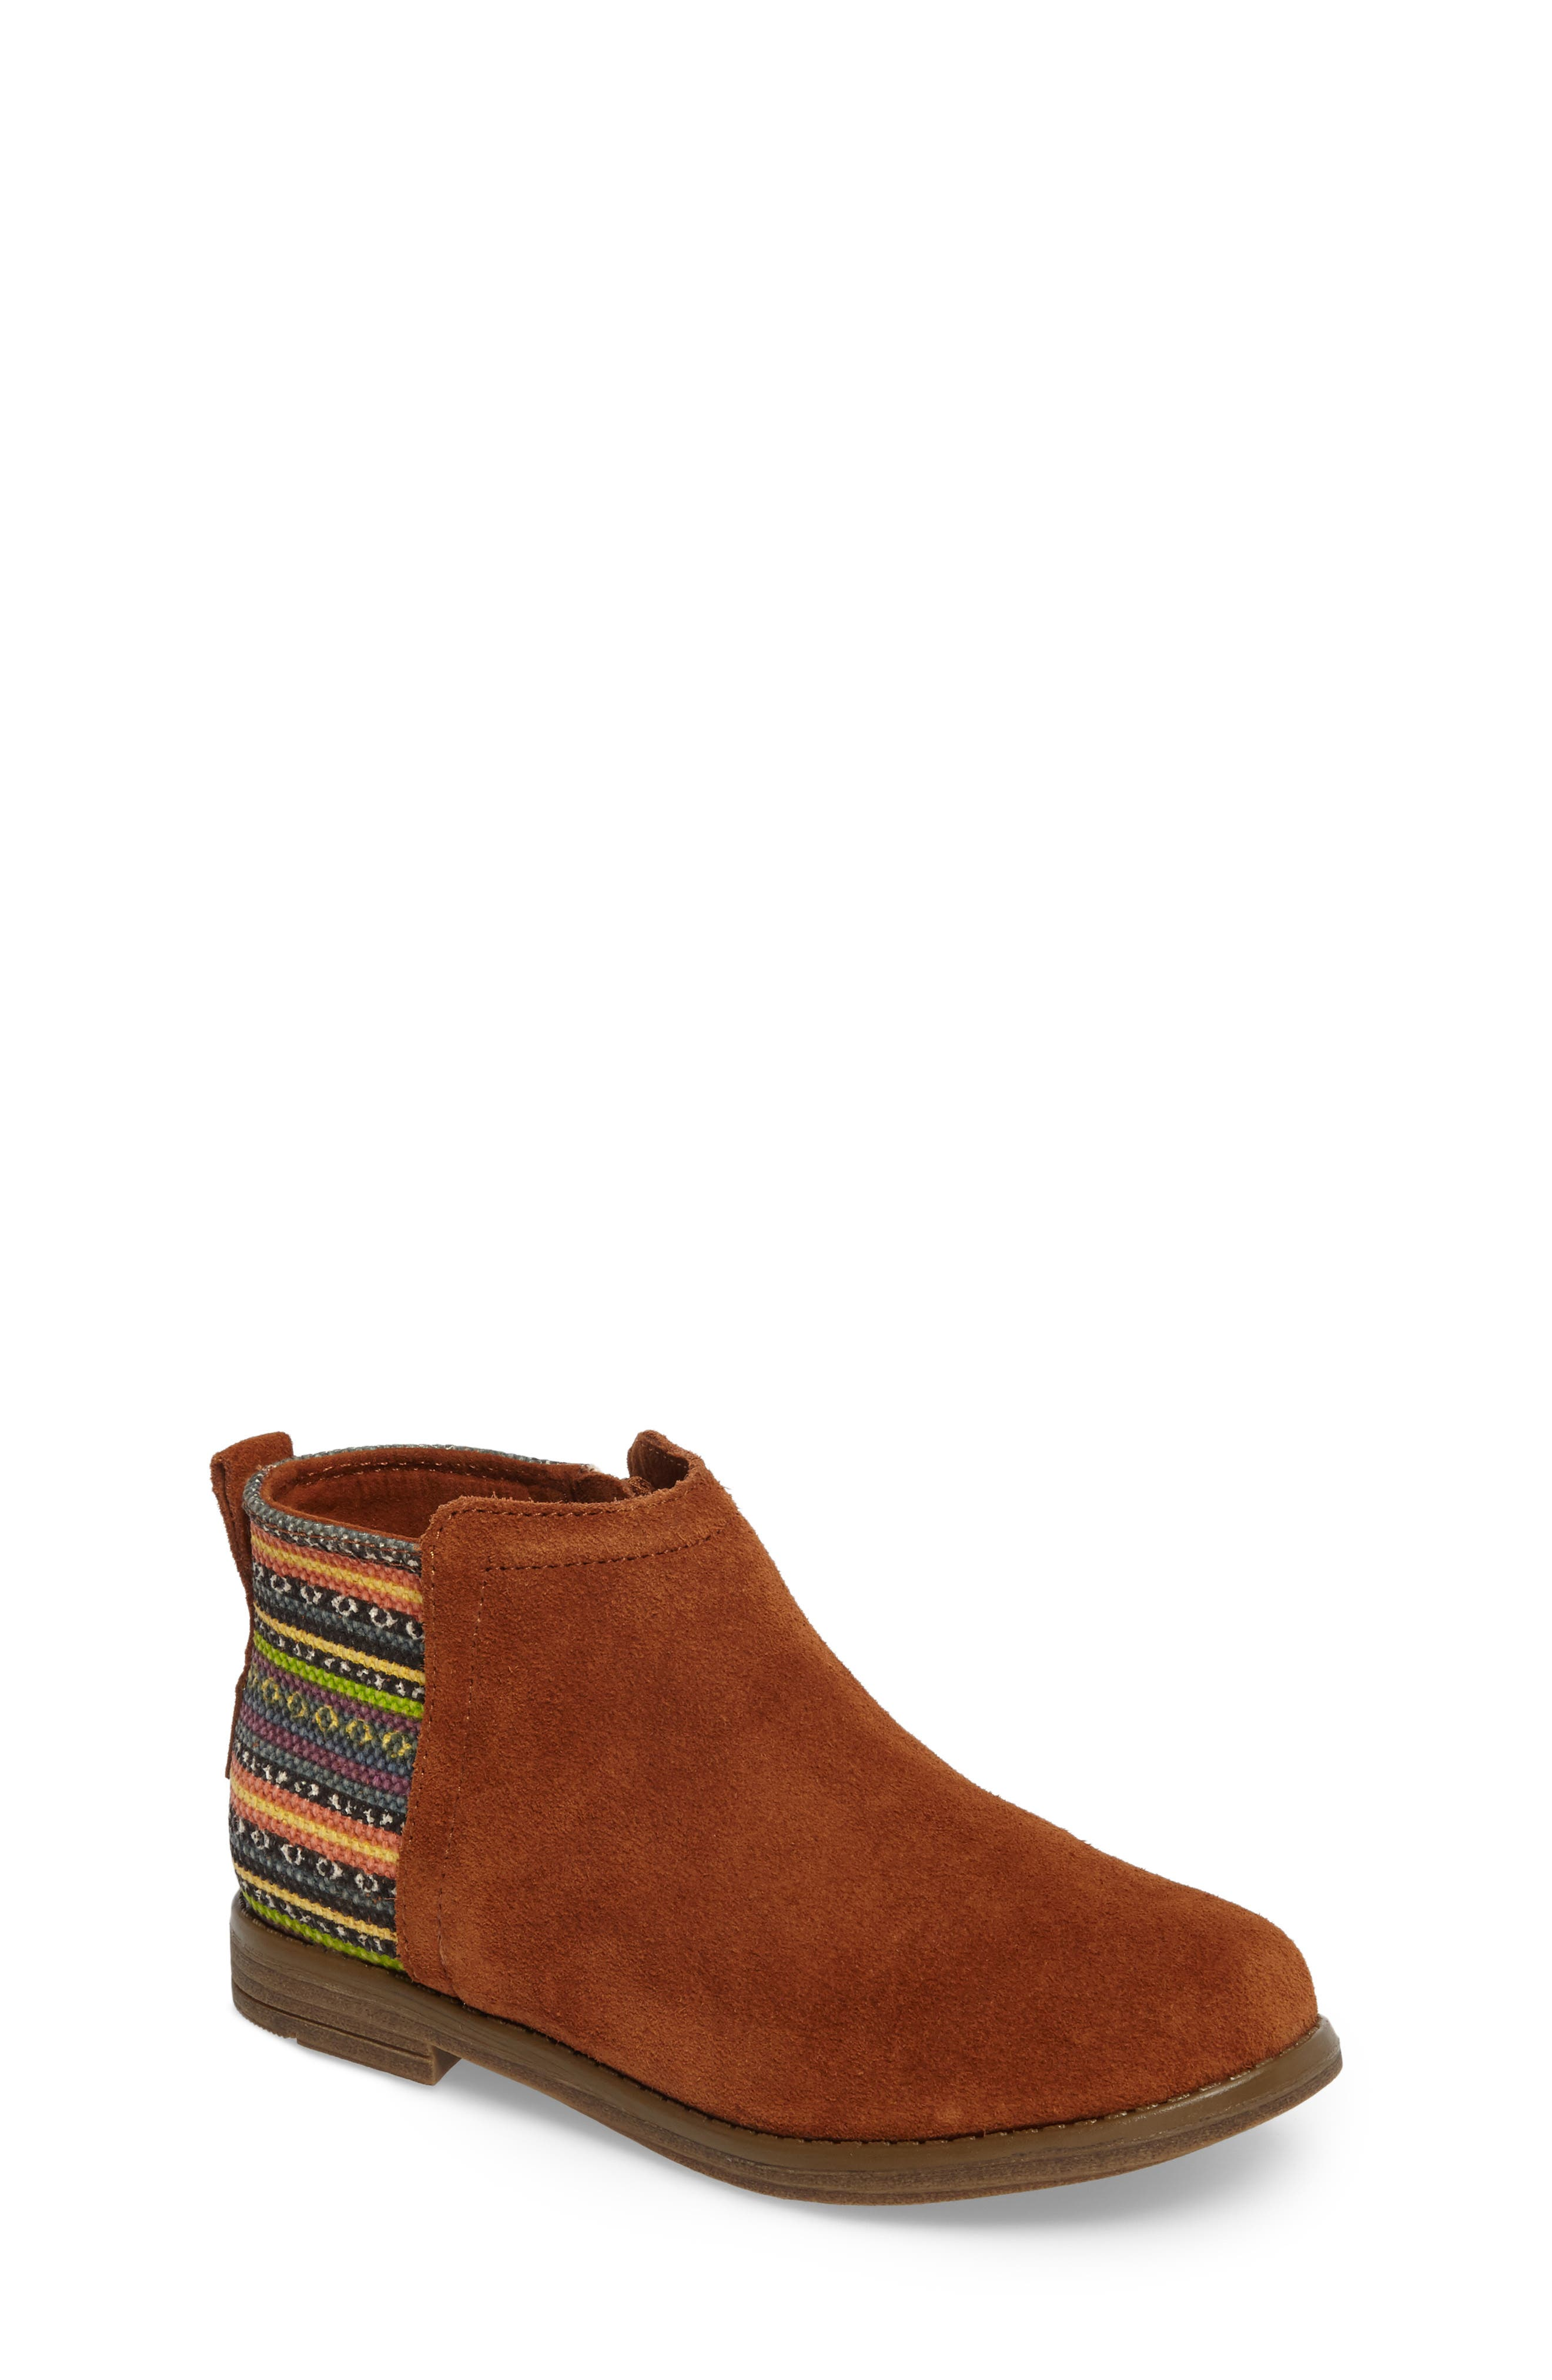 Alternate Image 1 Selected - TOMS Deia Mixed Media Bootie (Toddler, Little Kid & Big Kid)